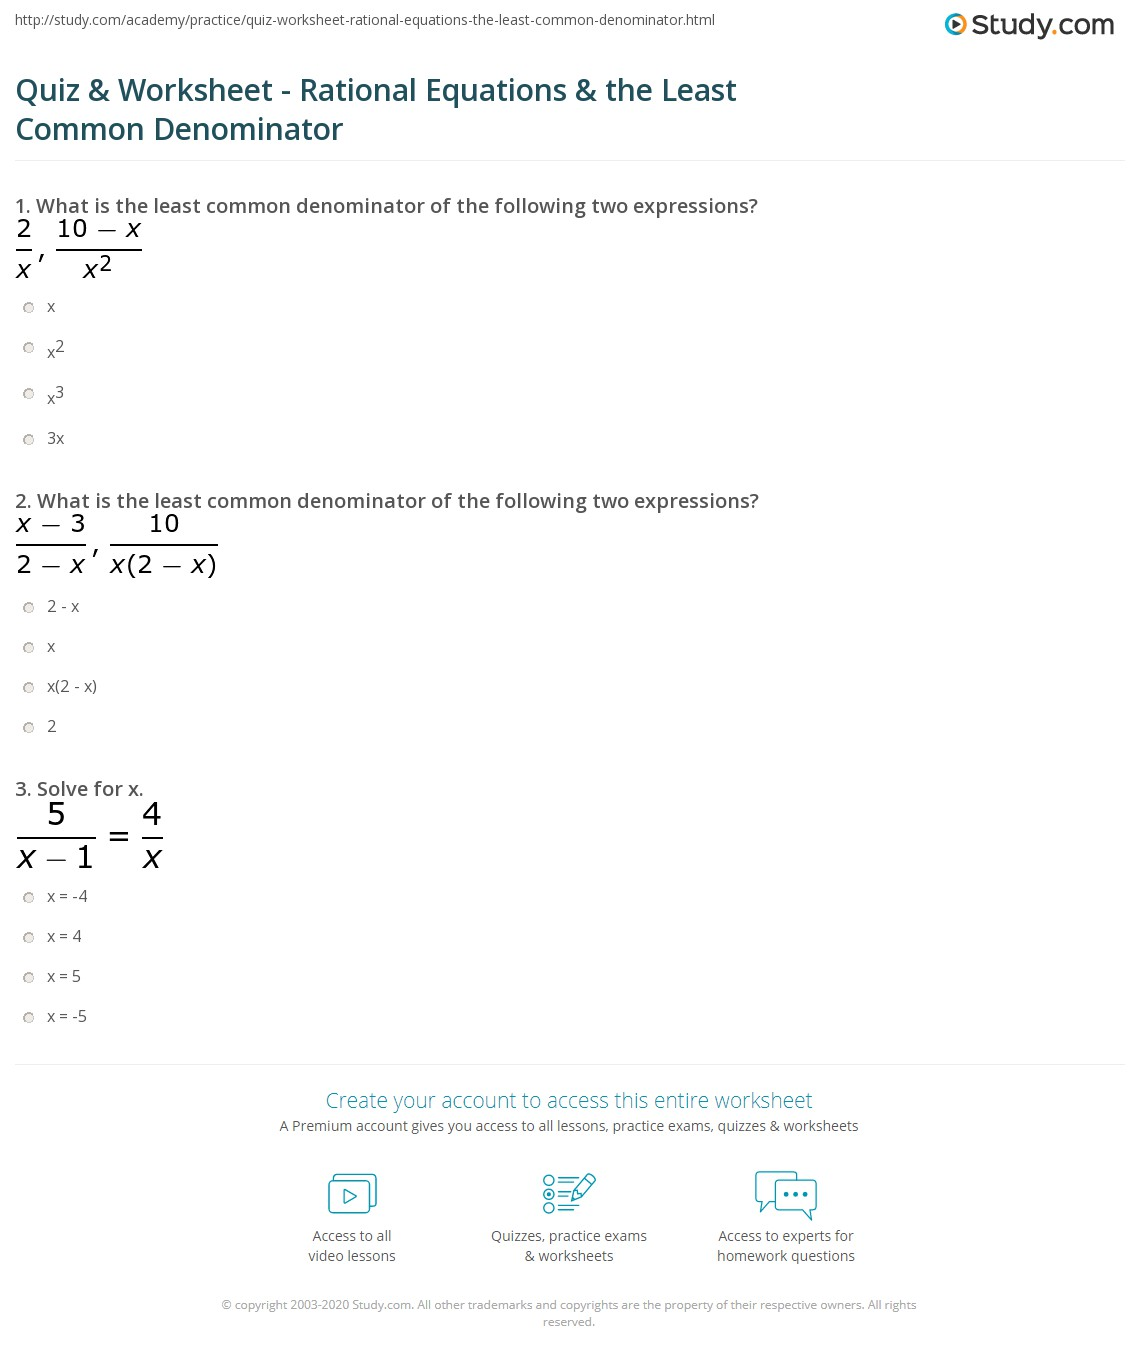 print solving rational equations and finding the least common denominator worksheet - Rational Equations Worksheet